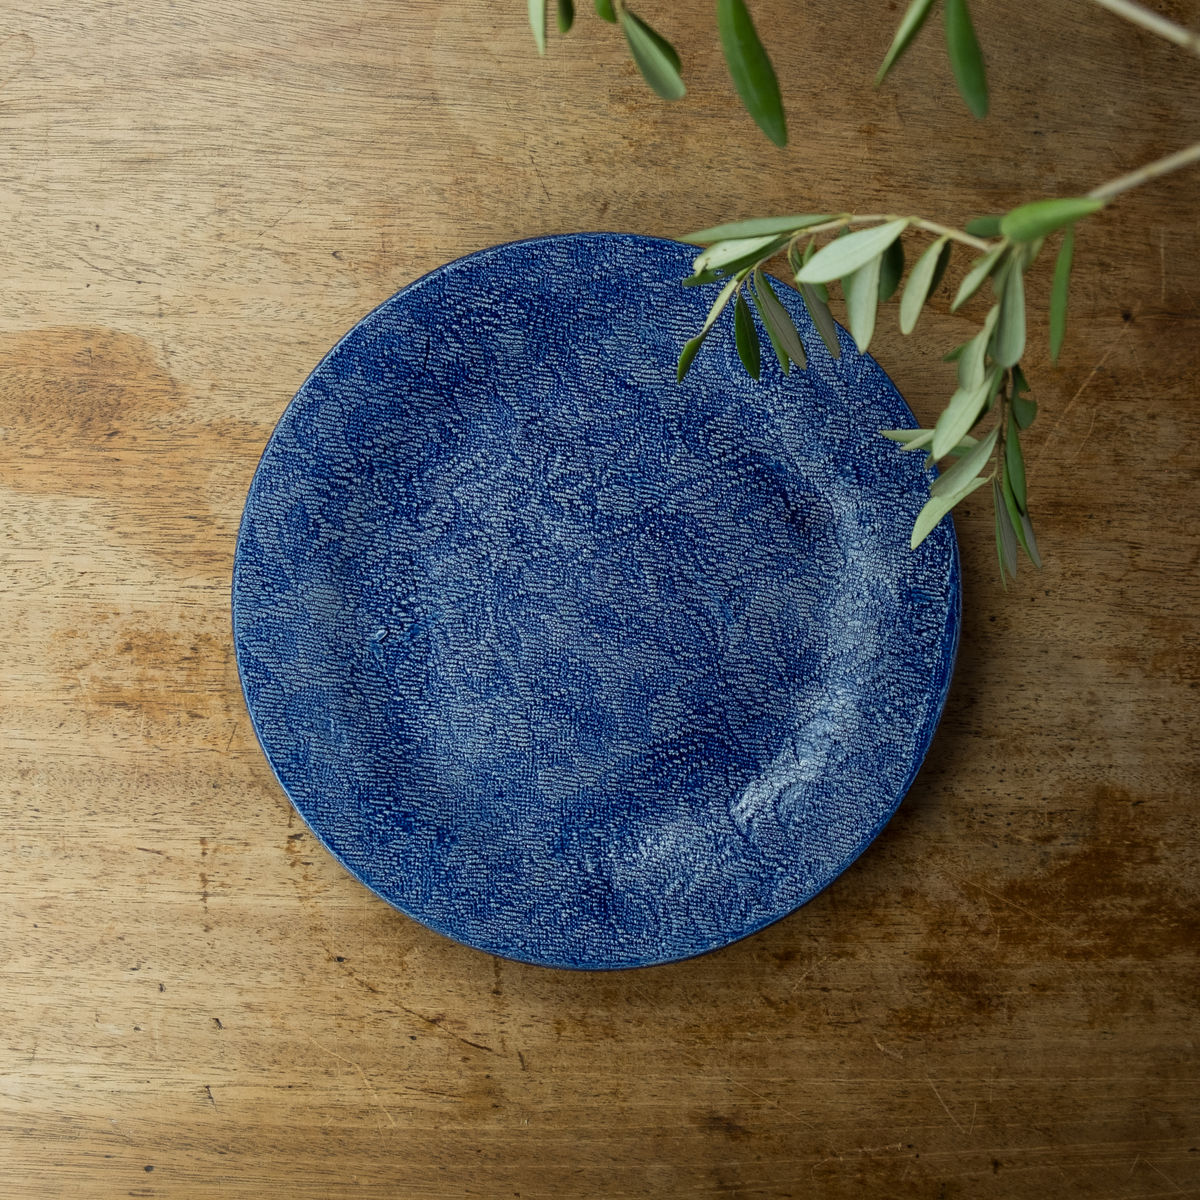 Turabi ceramics -  Cobalt blue lace imprinted large plate - Handcrafted in Palestine - product images  of